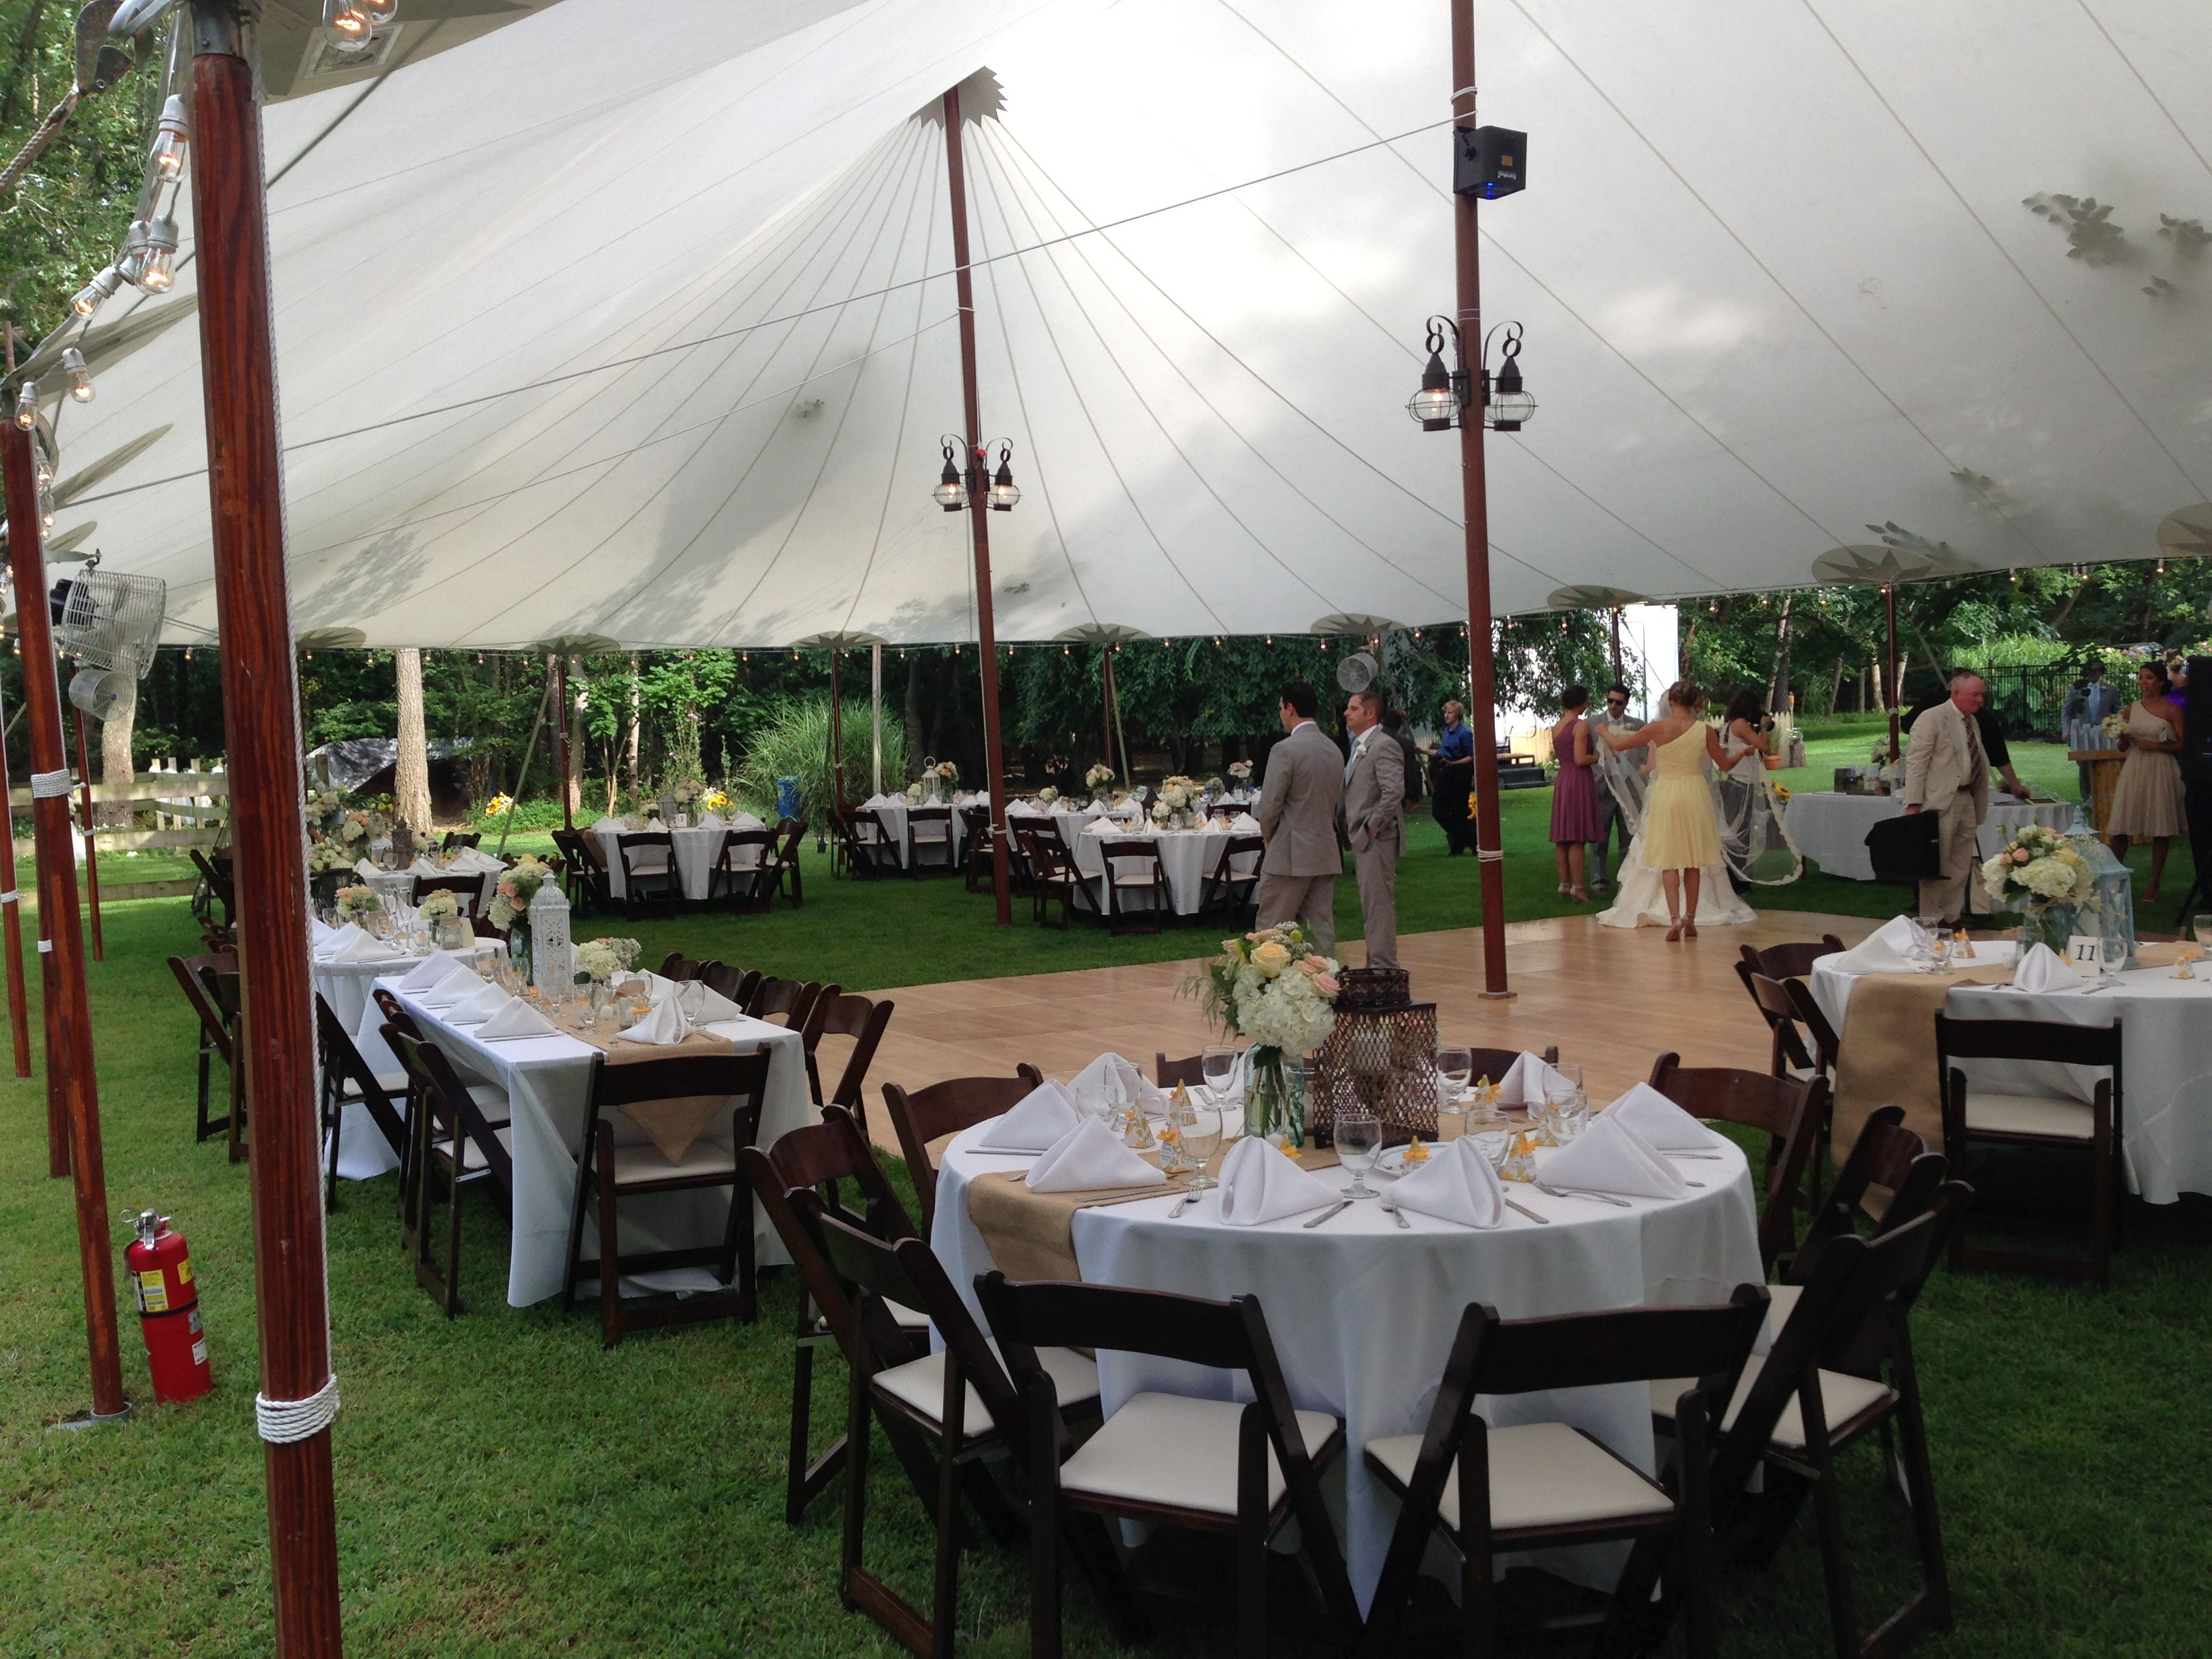 an elegant tented wedding. White table cloths with burlap runners and dark wood chairs make for elegant seating in a backyard setting www.TheLoftFlorist.com